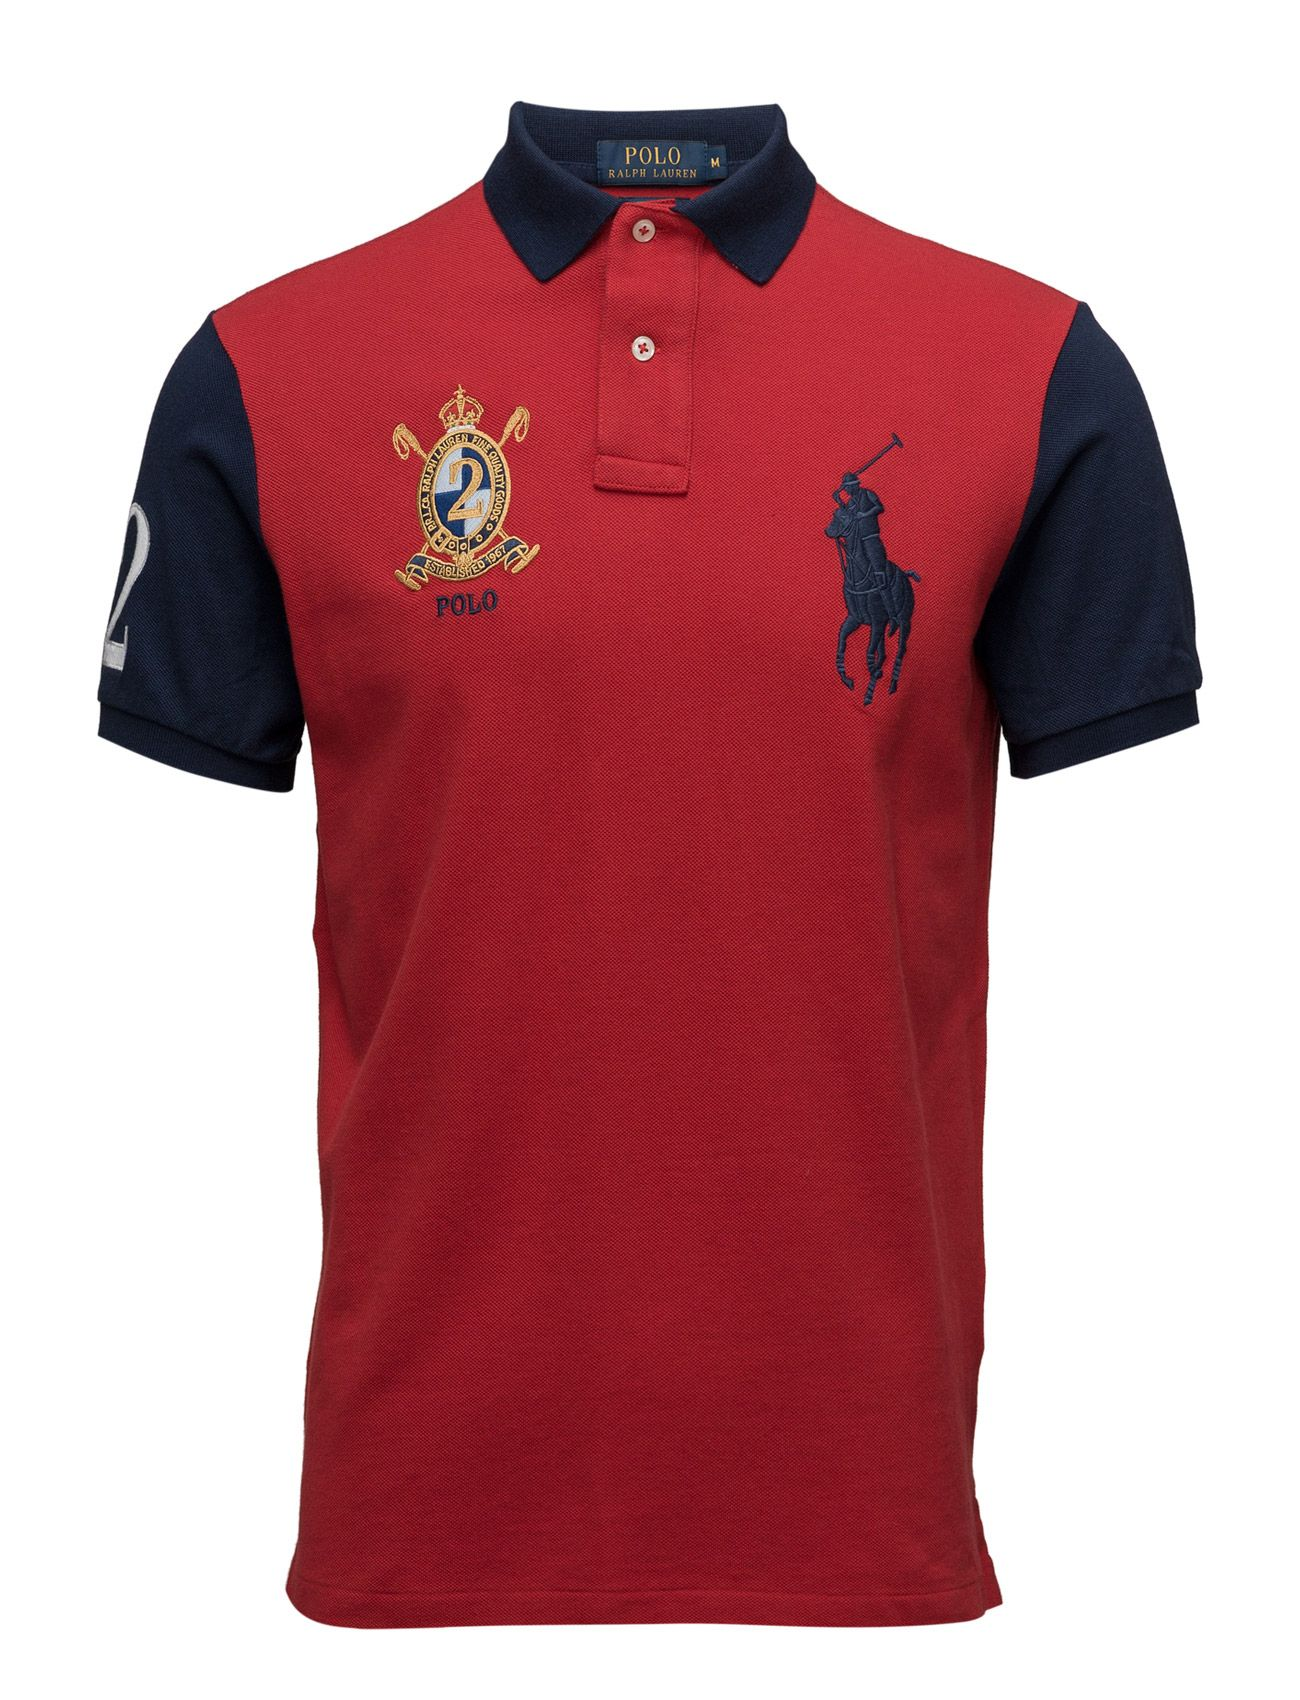 polo ralph lauren custom-fit big pony polo shirt - polo shirts rl 2000 red